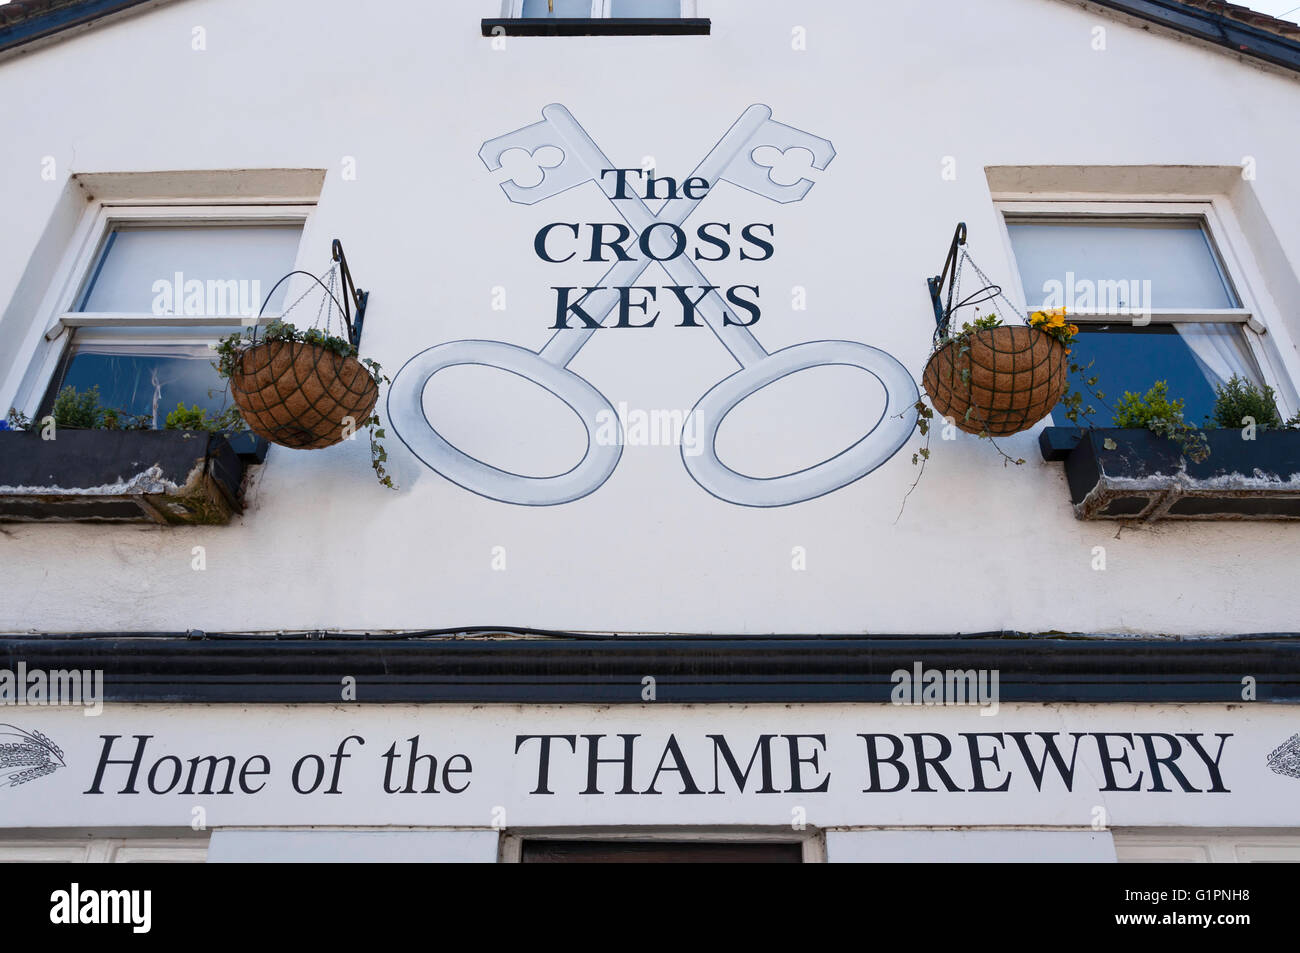 17th century The Cross Keys Pub, East Street, Thame, Oxfordshire, England, United Kingdom - Stock Image